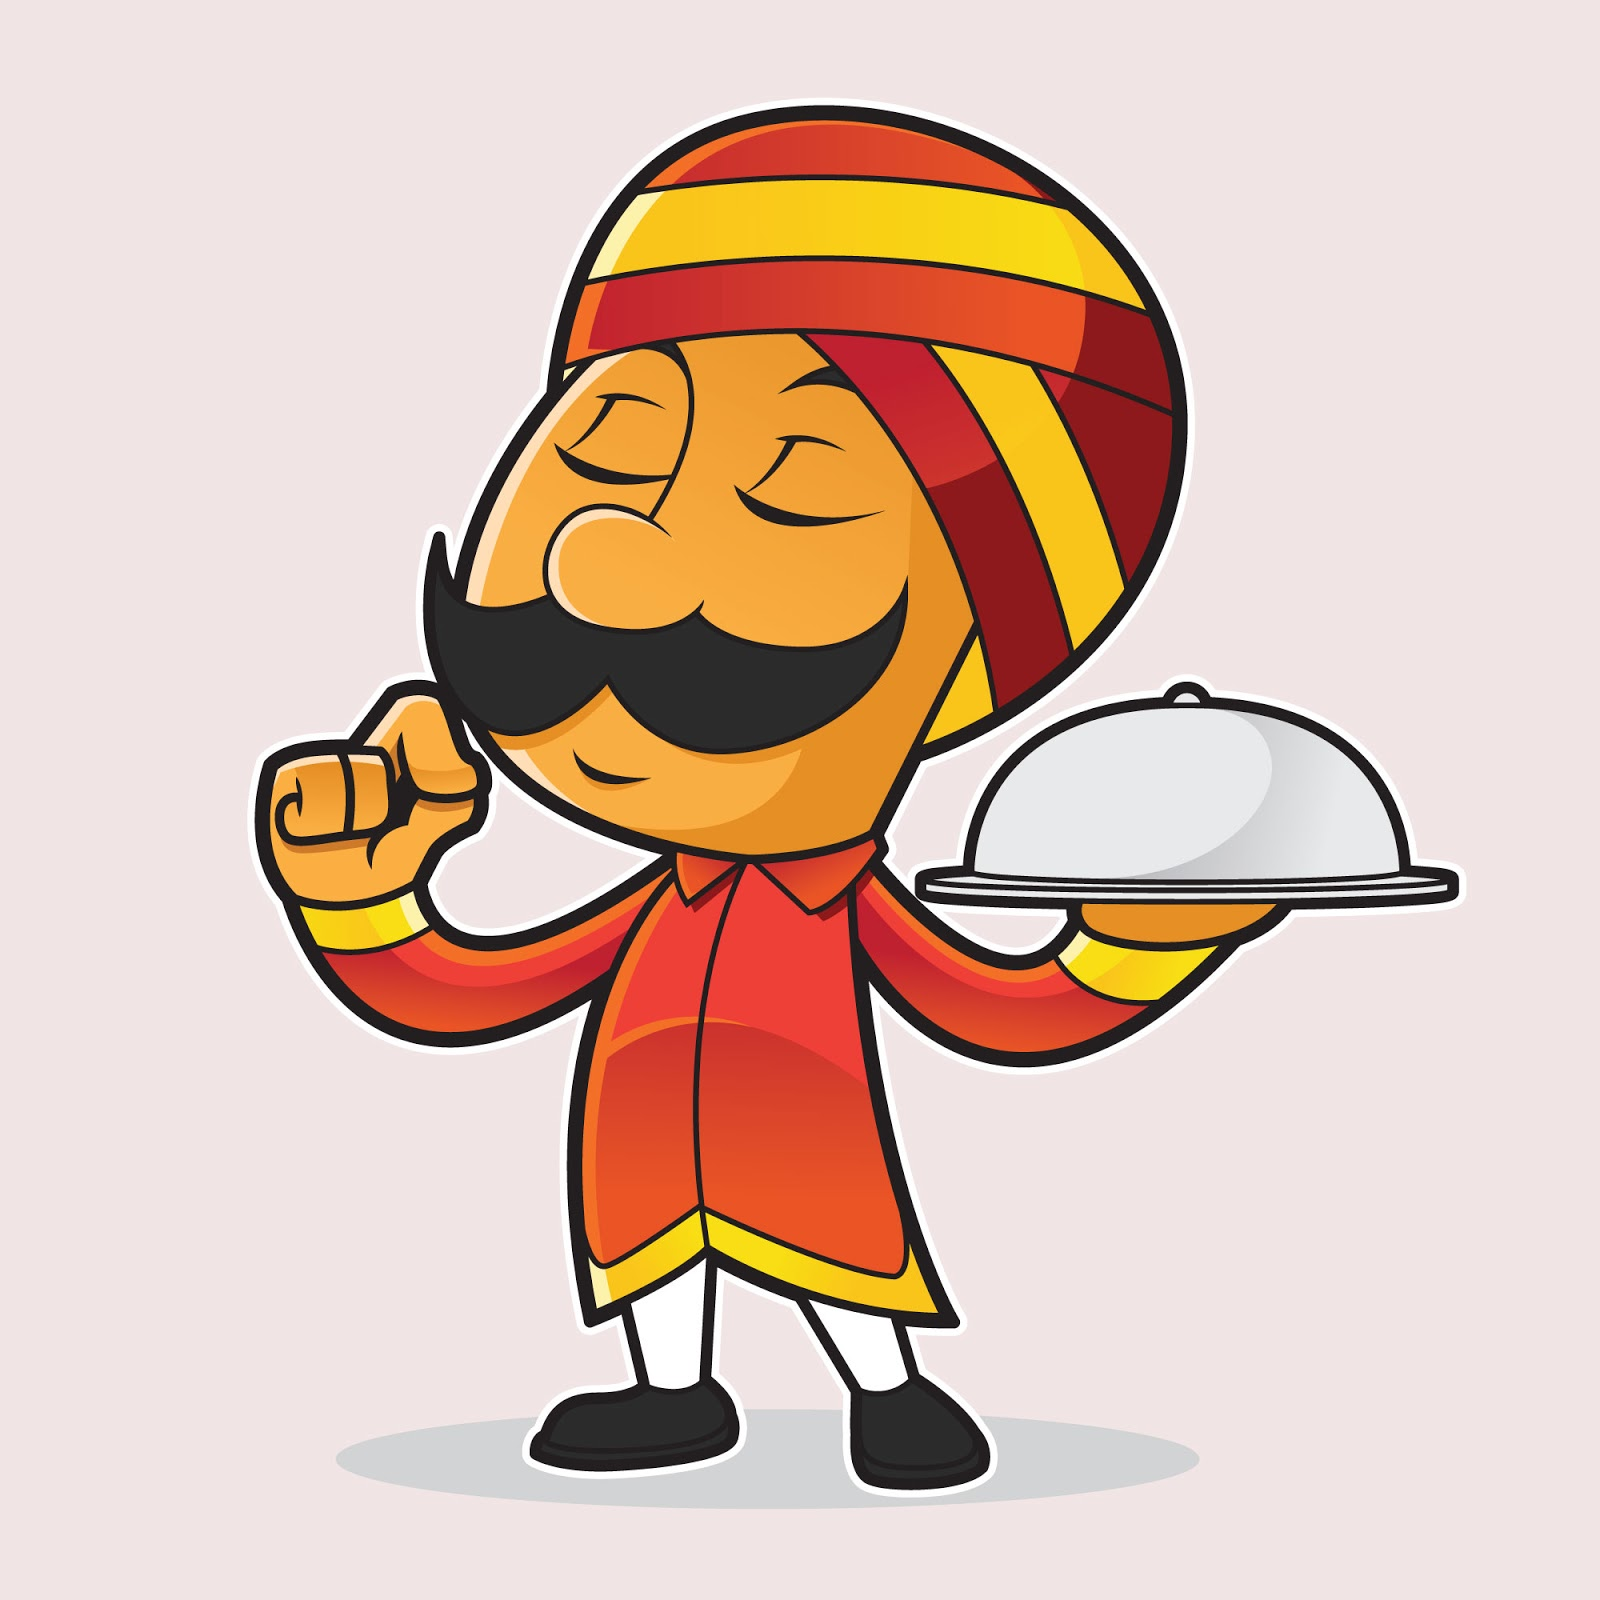 Indian Chef Mascot Free Download Vector CDR, AI, EPS and PNG Formats